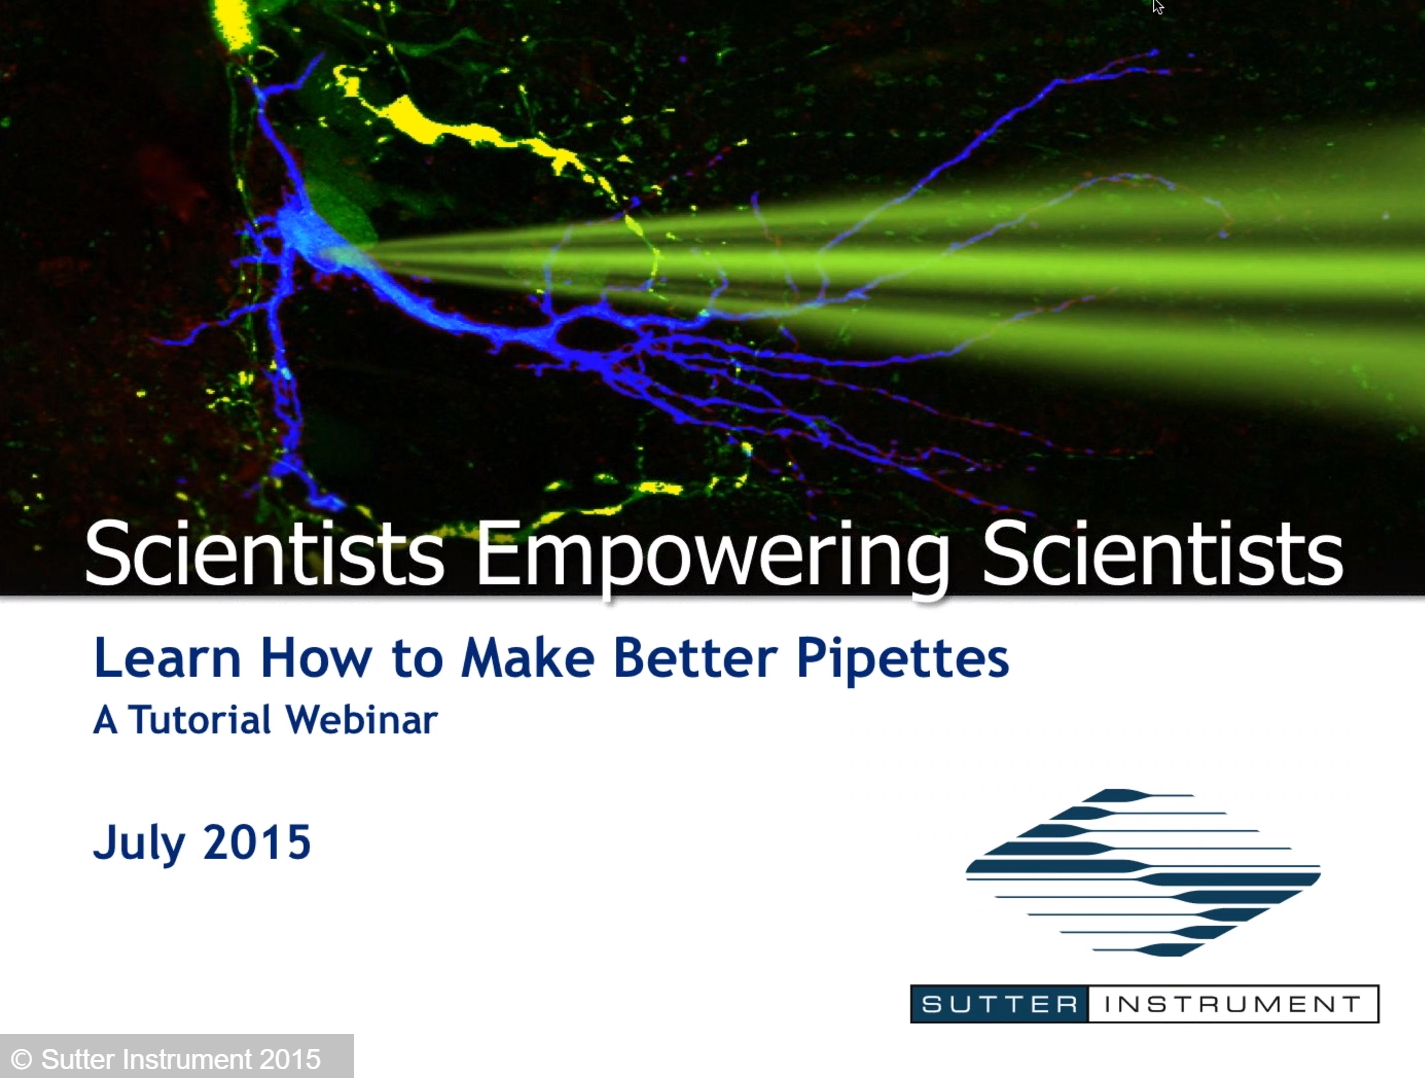 How To Make Better Pipettes-Scientists Empowering Scientists